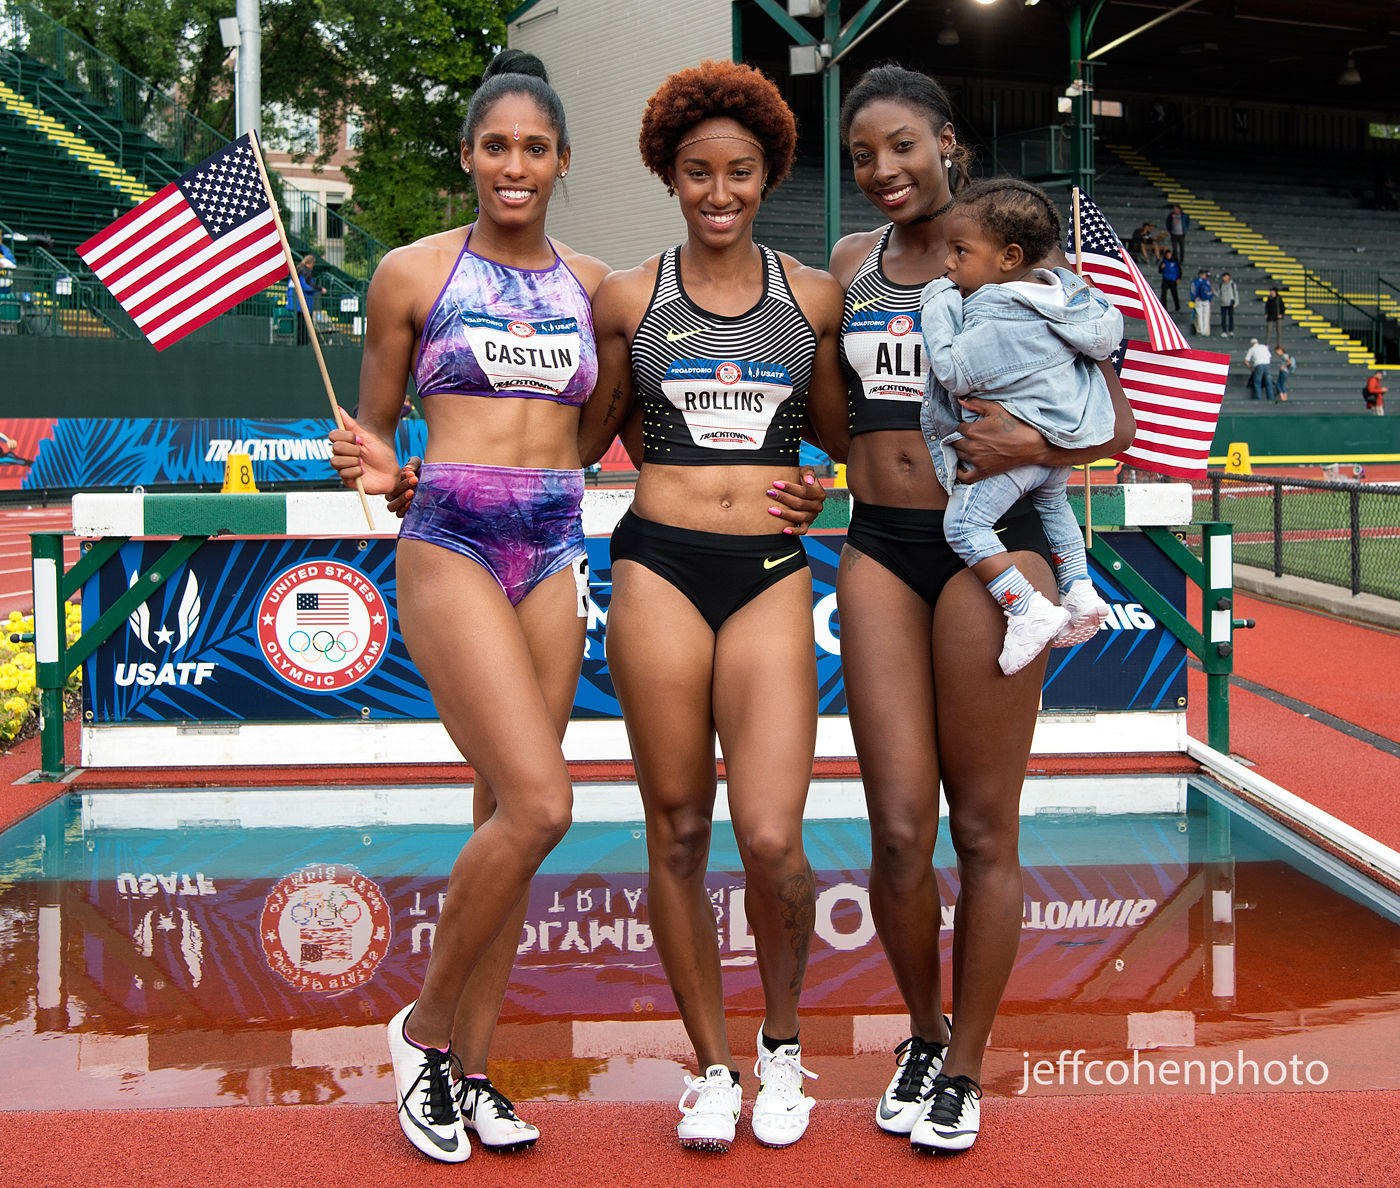 1r2016_oly_trials_day_7_100hw_winners_jeff_cohen_photo_24132_web.jpg